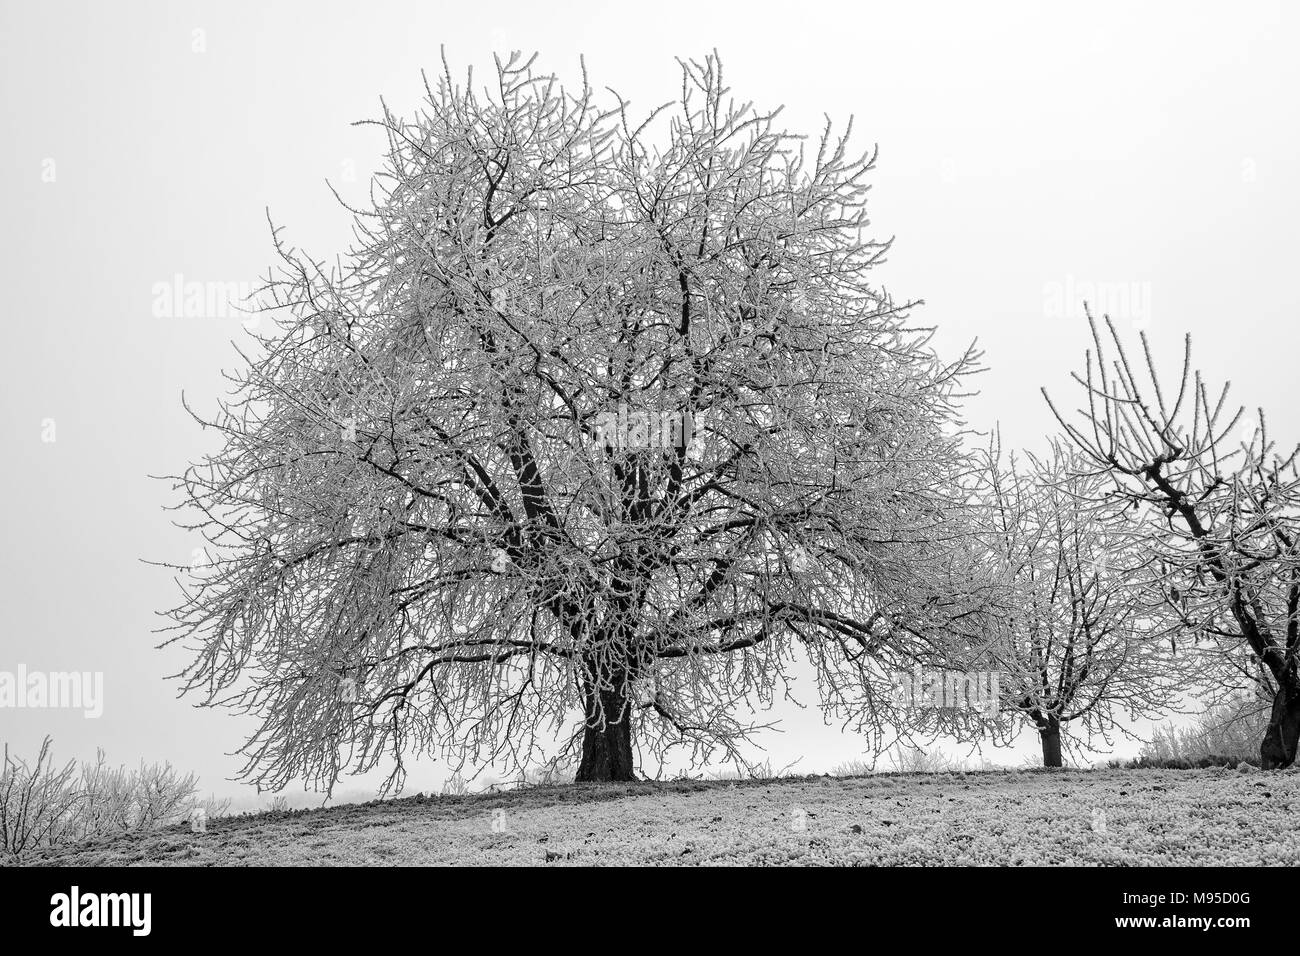 Frozen tree in winter with lots of branches, melancholic foggy scene, - Stock Image